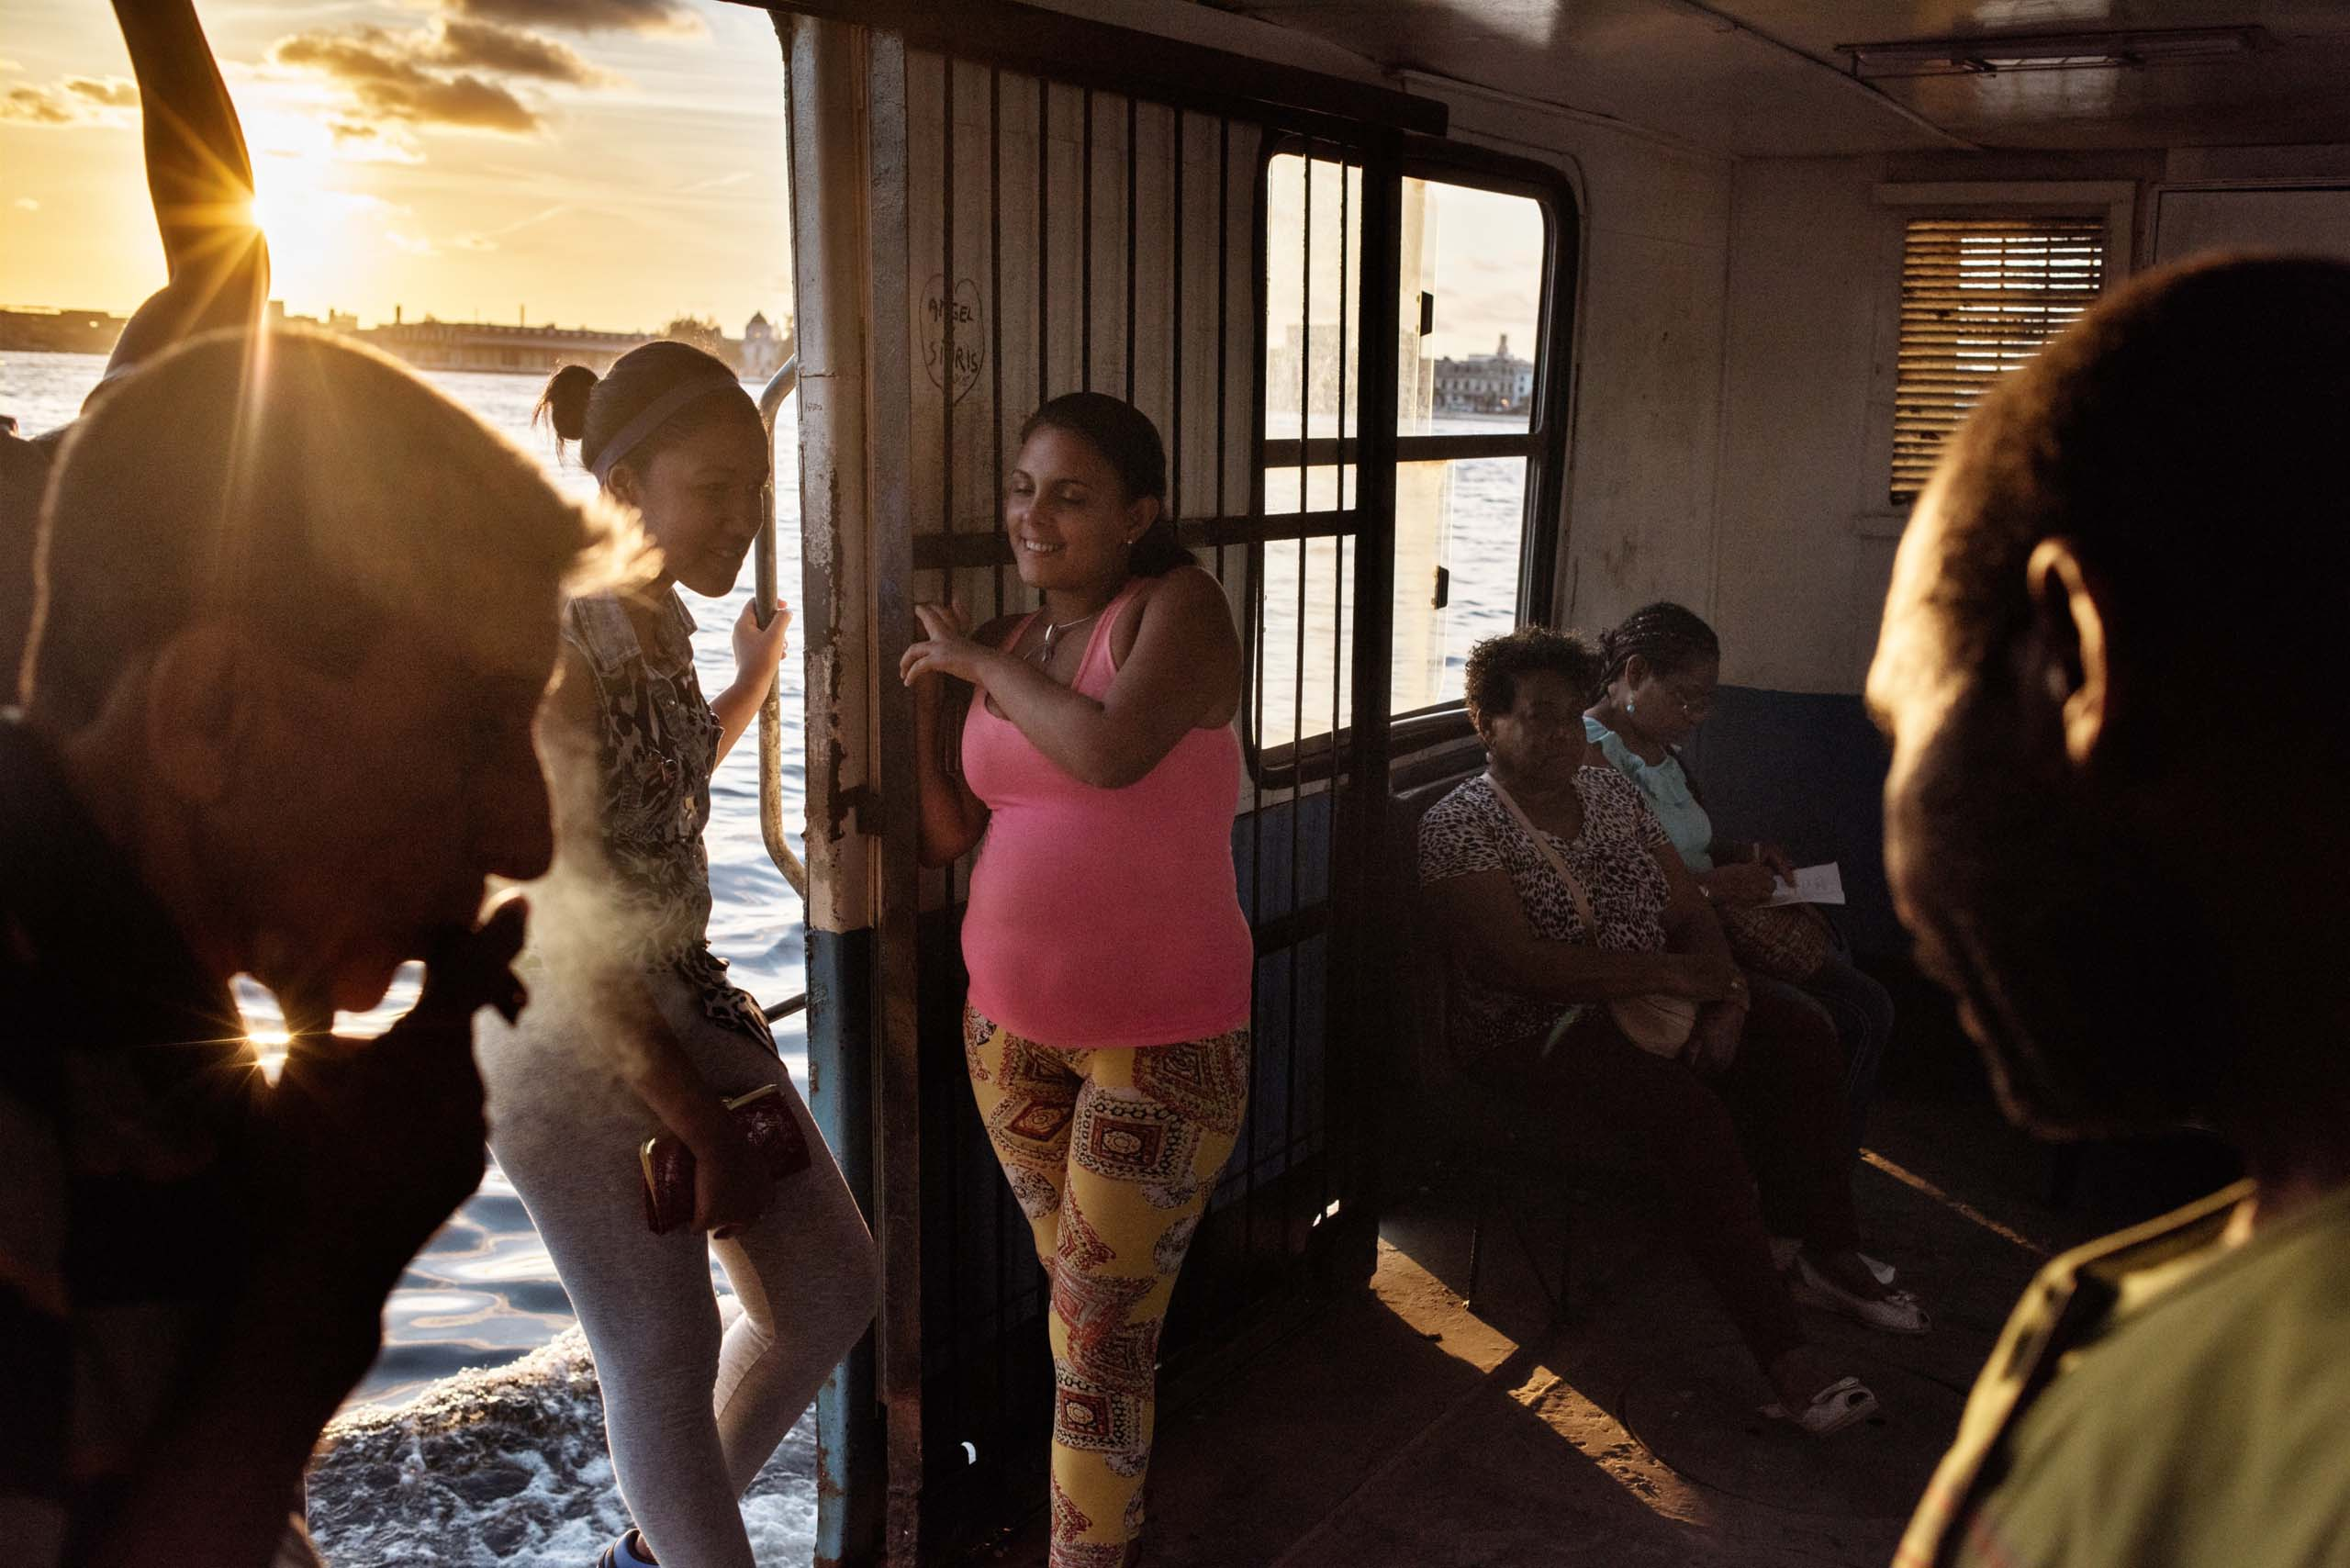 January 2015. A ferry transports passengers between Havana and Casablanca, a suburb of the Cuban capital.